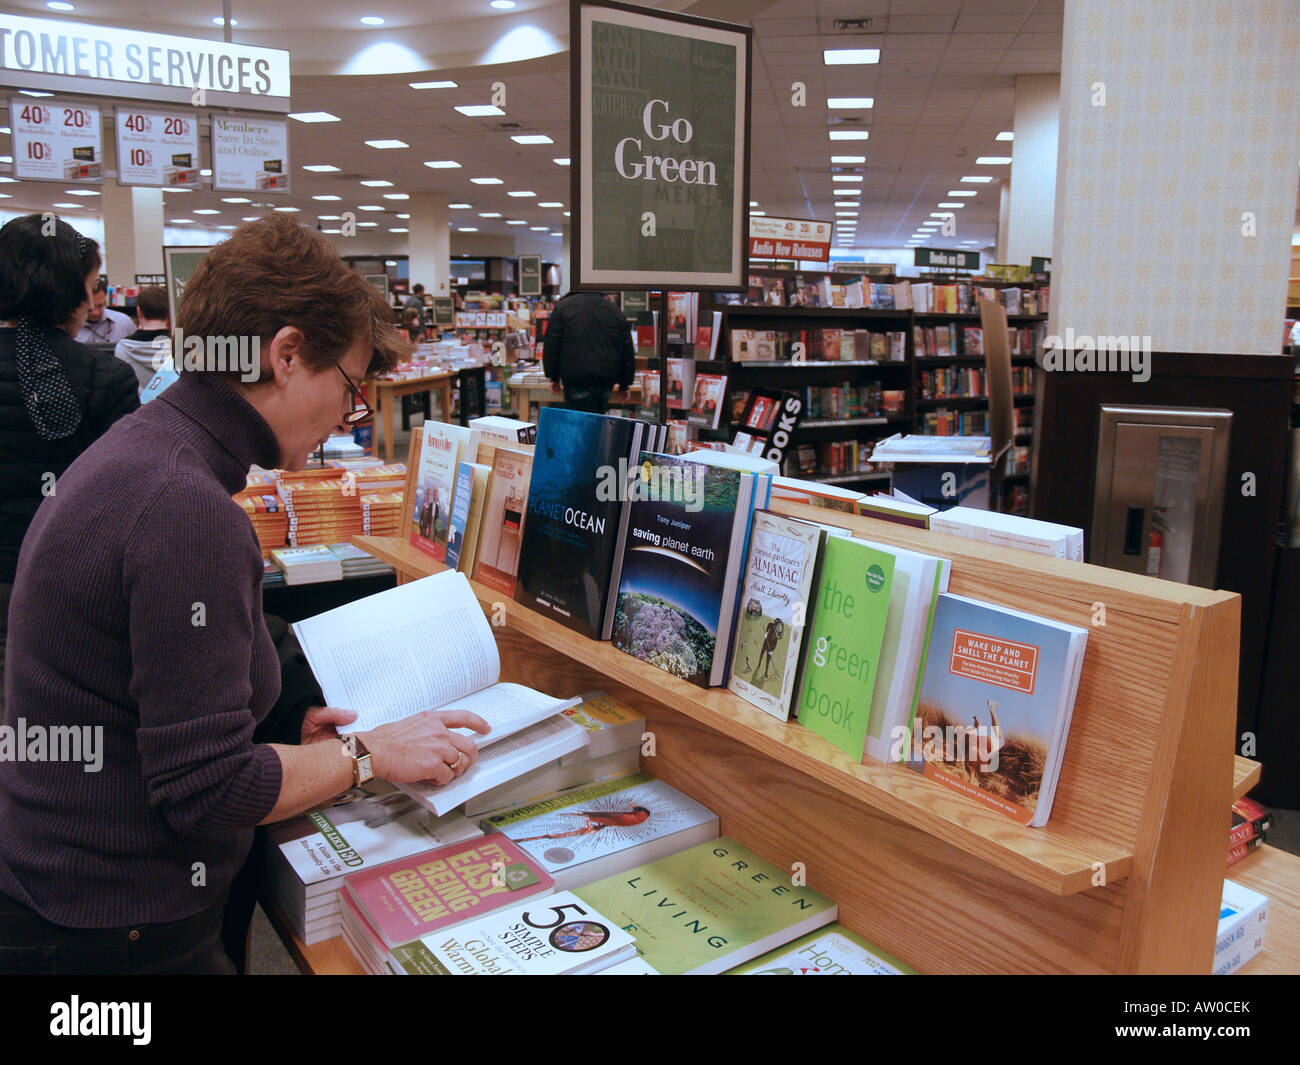 A woman peruses a book about green living at a bookstore - Stock Image